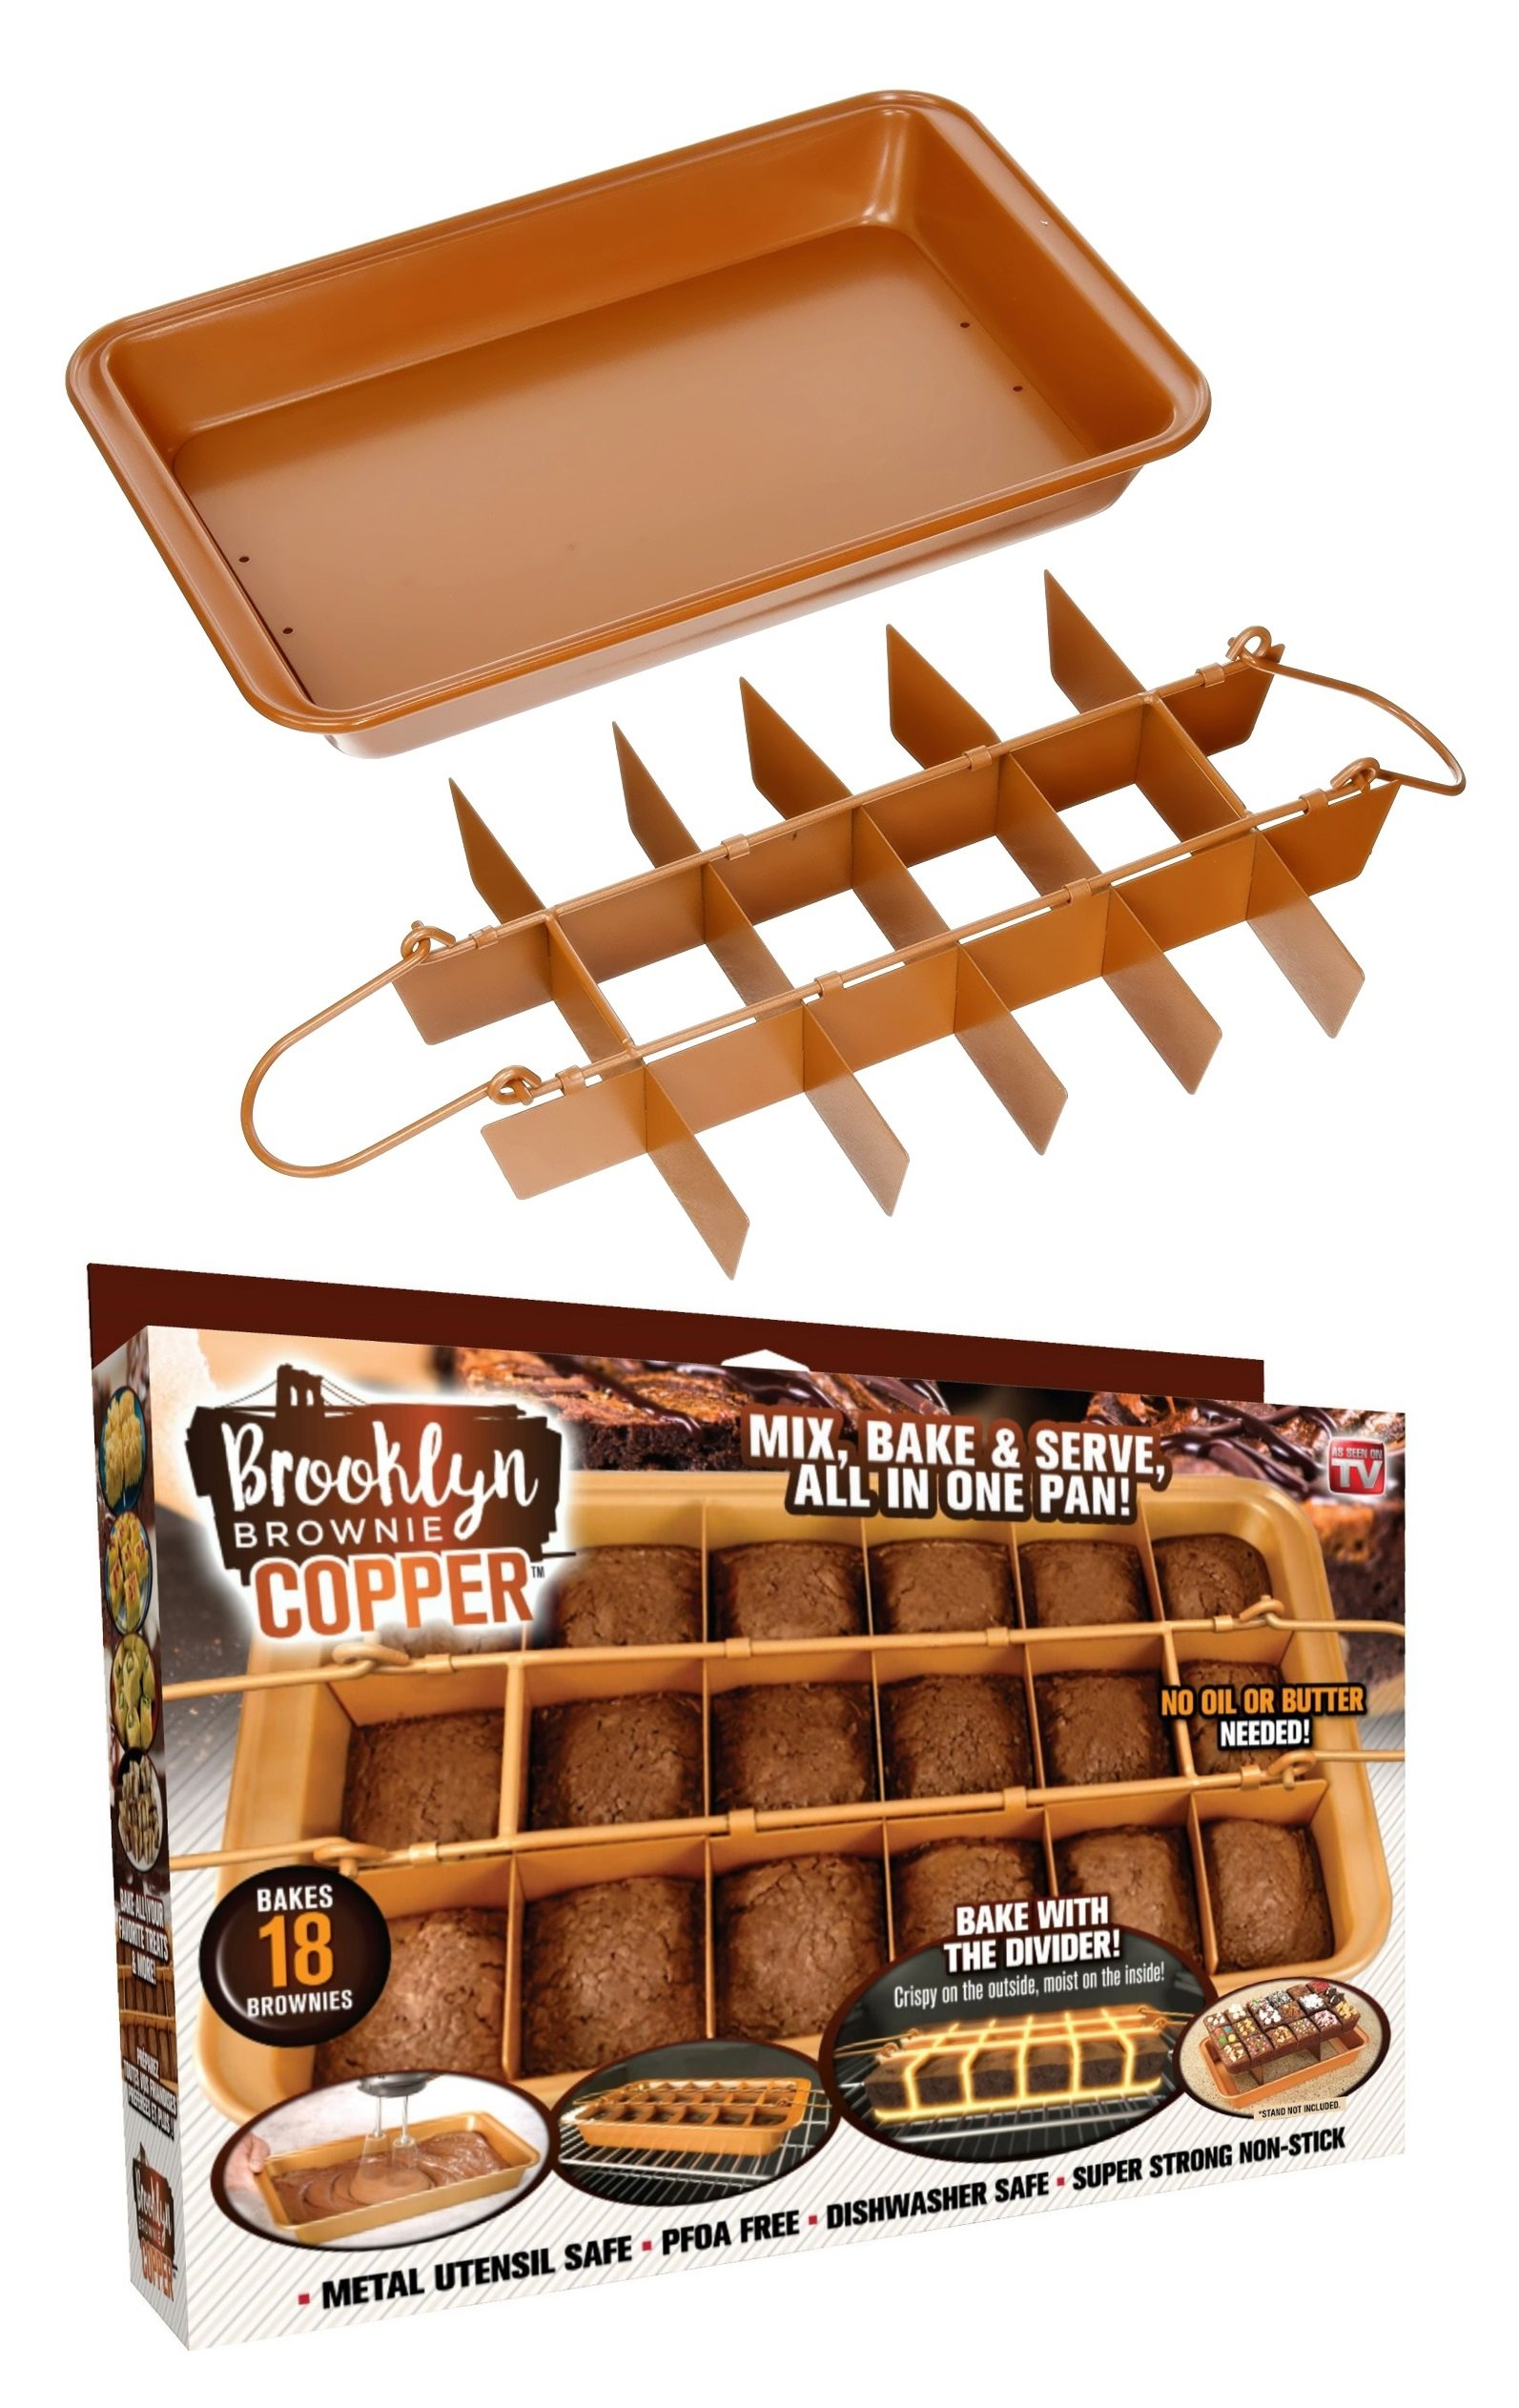 Brooklyn Brownie Copper by Gotham Steel Nonstick Baking Pan with Built-In Slicer, Ensures Perfect Crispy Edges, Metal Utensil and Dishwasher Safe by GOTHAM STEEL